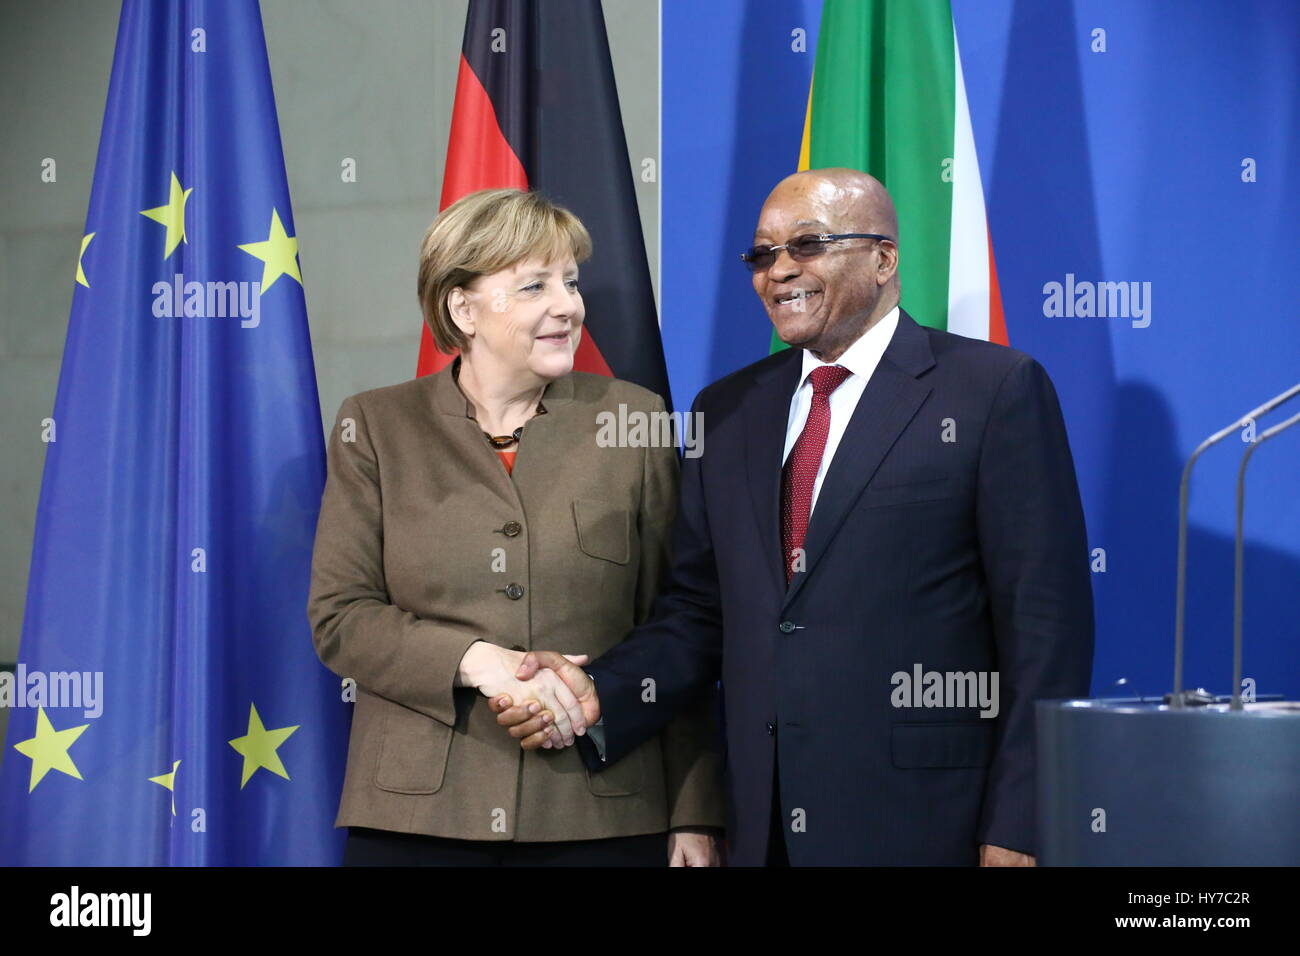 Berlin, Germany, November 10th, 2015: South African President Jacob Zuma for official visit. - Stock Image